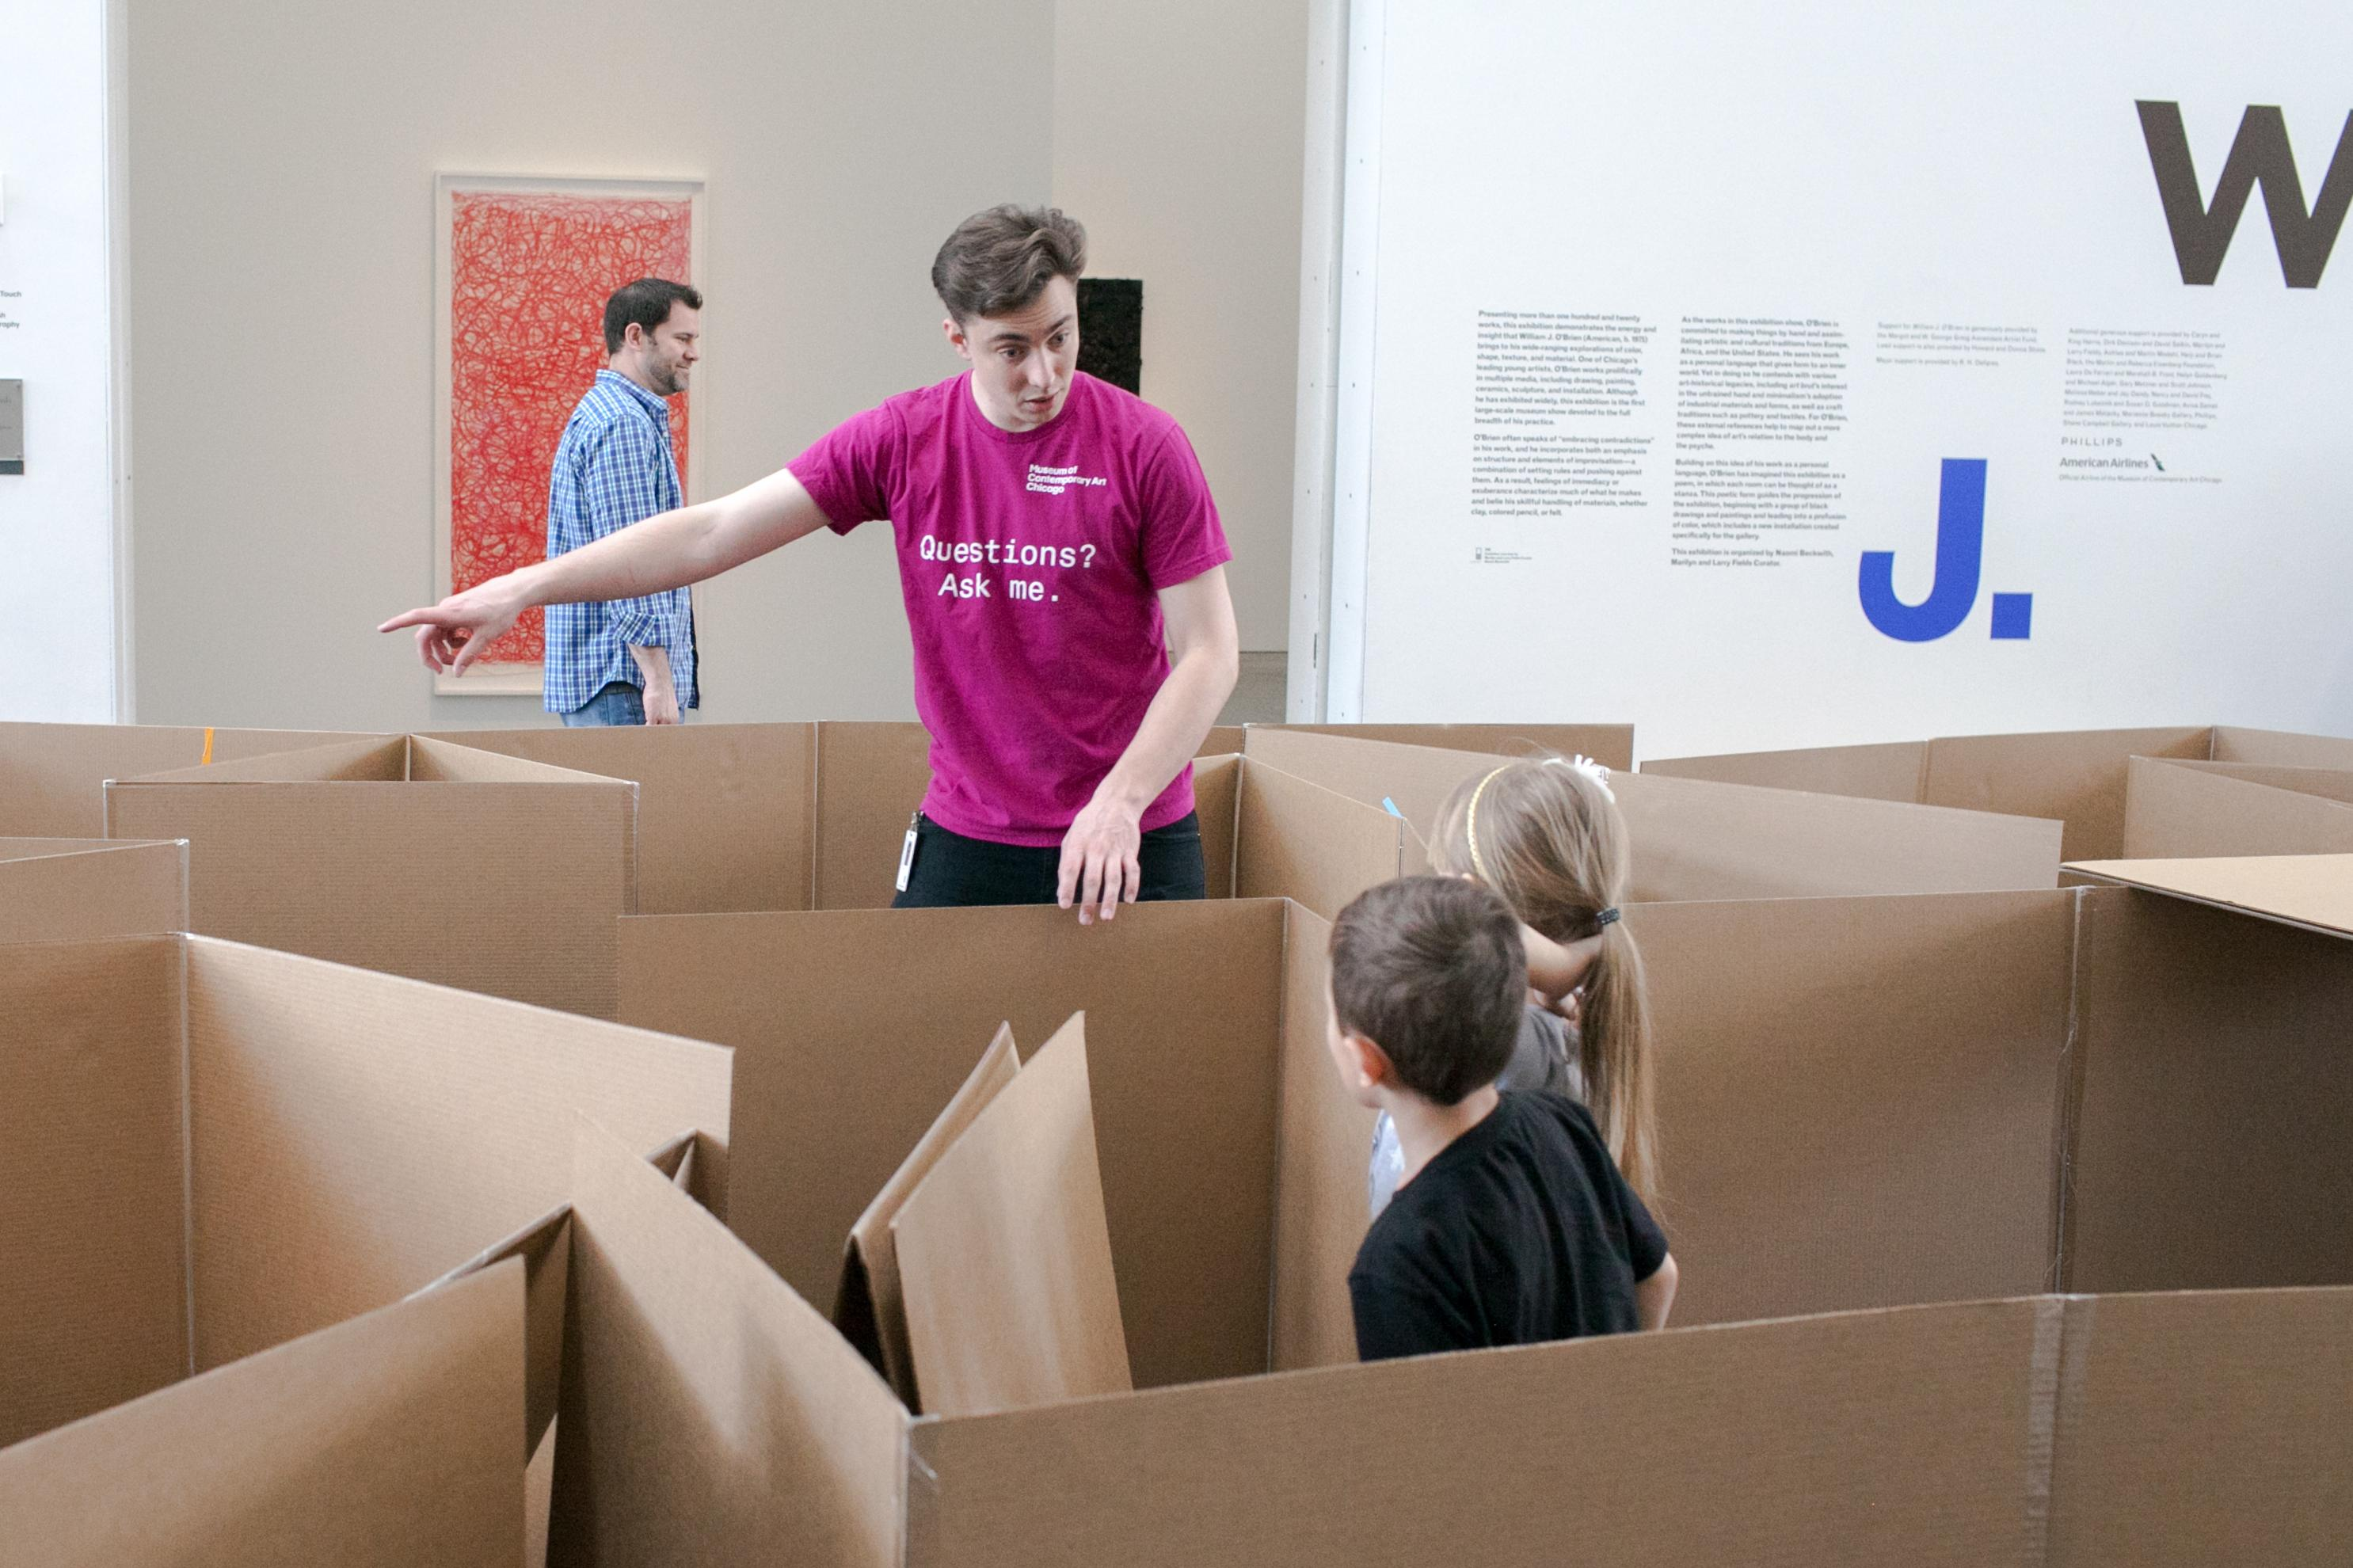 Two children in a cardboard maze look at man pointing to our left.